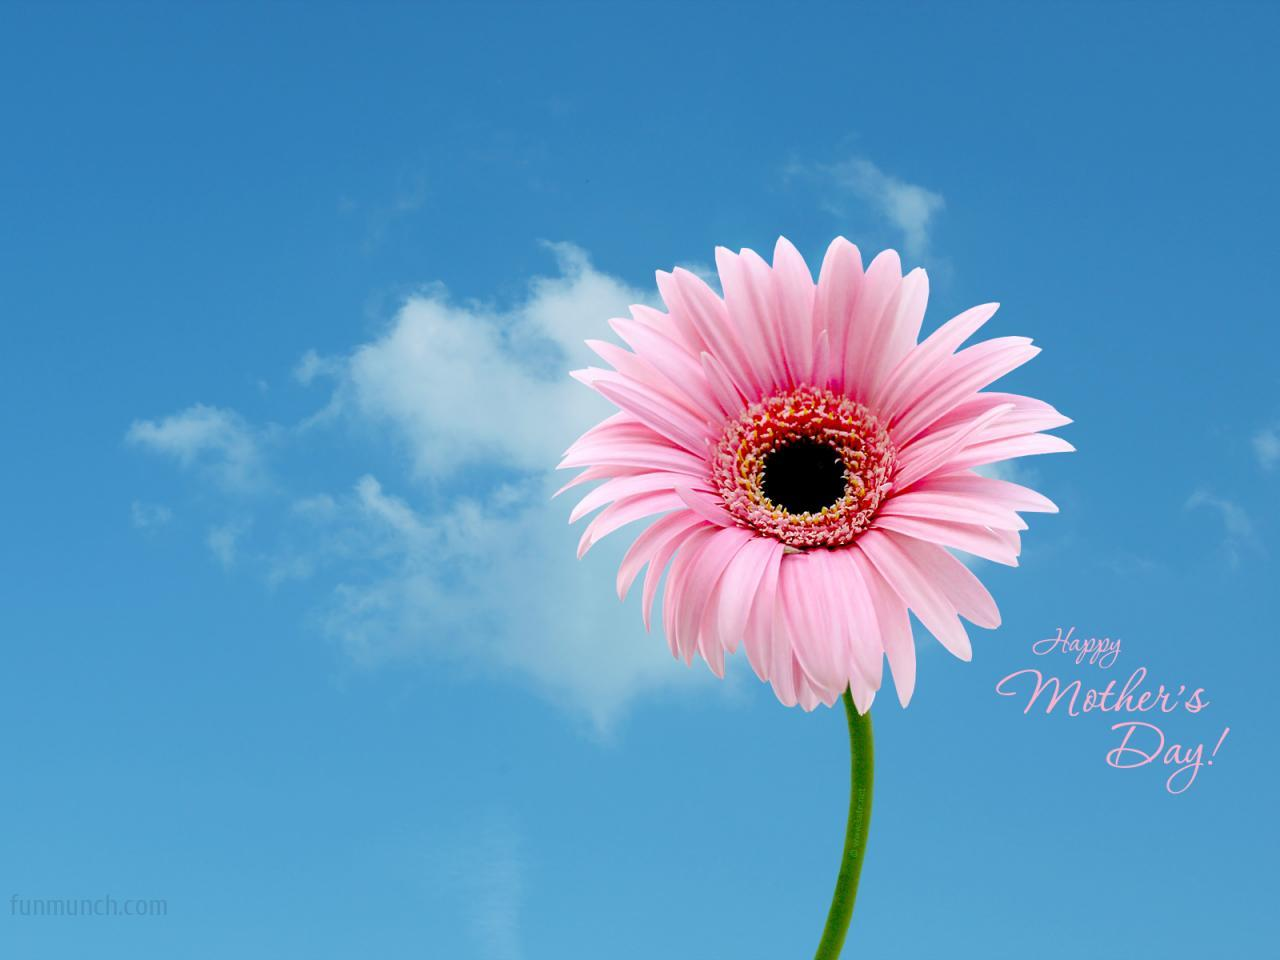 Mother's Day Images Mother's Day HD Wallpaper And